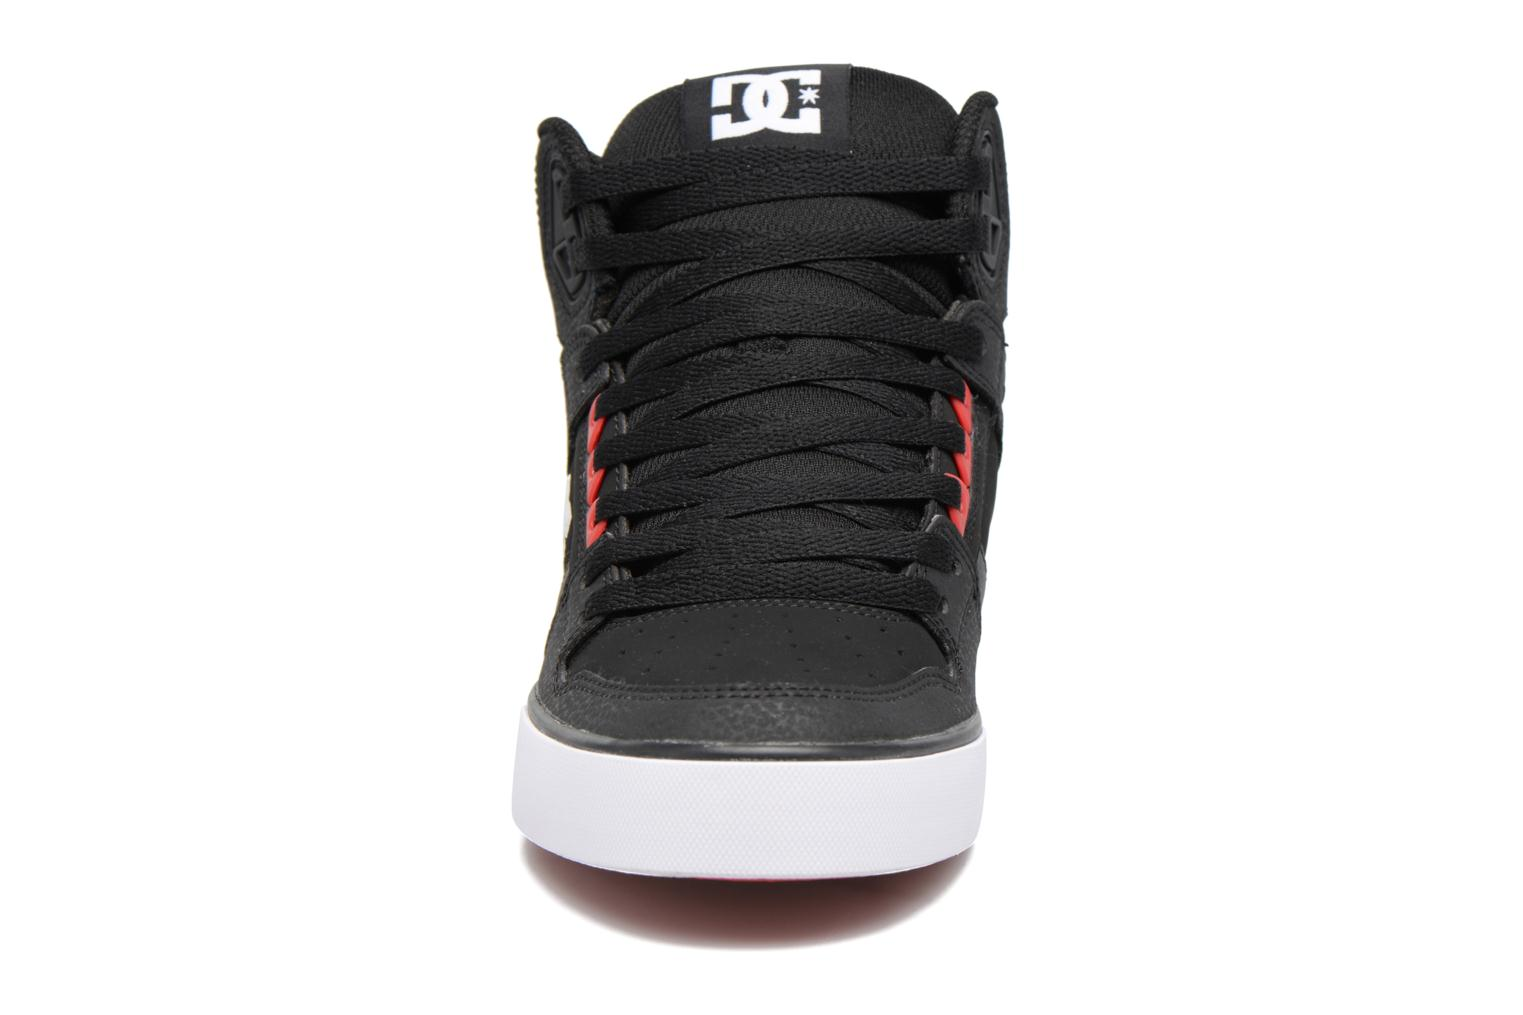 Spartan High WC Black/Red/Black